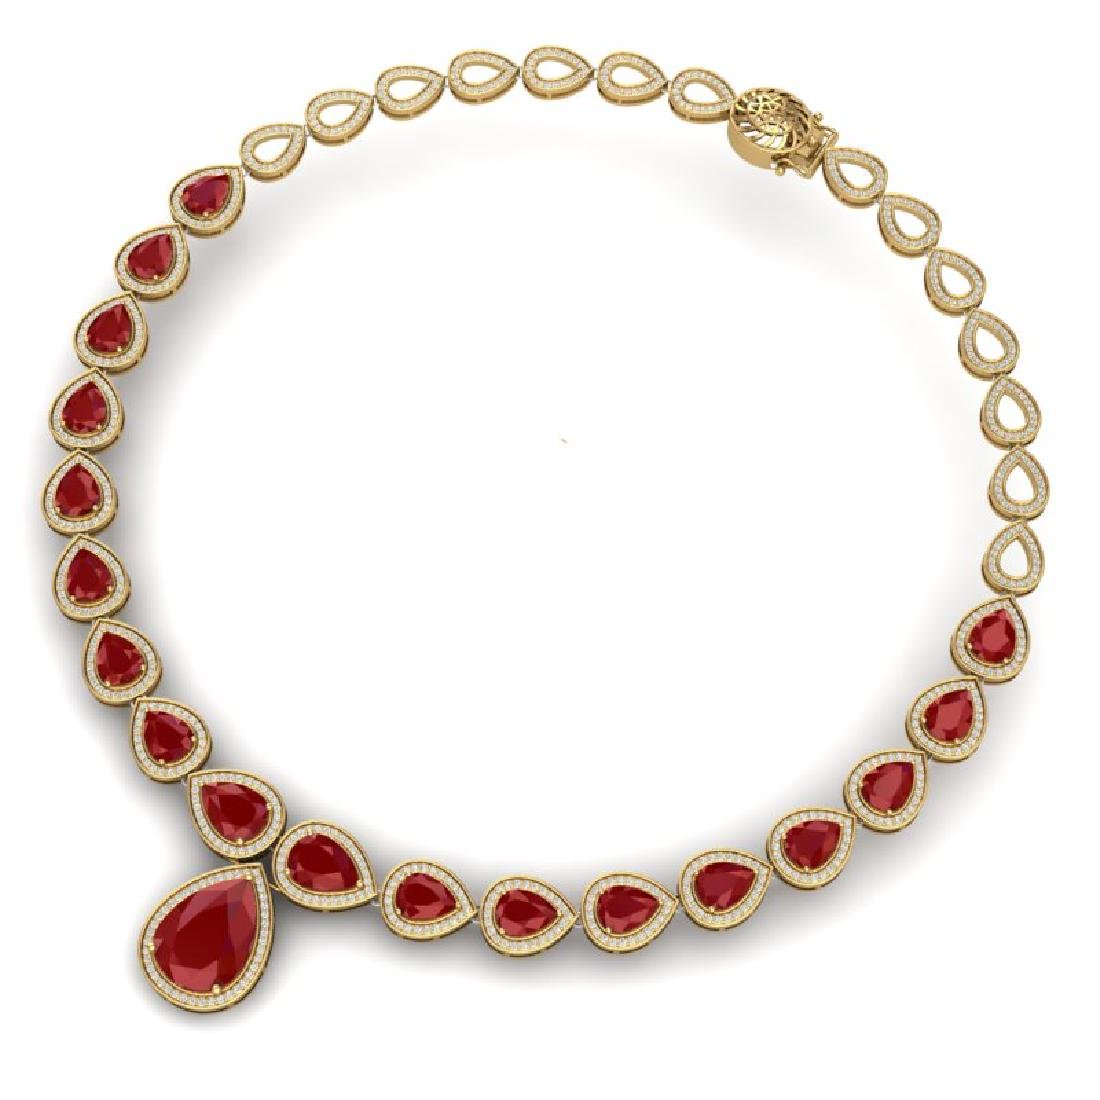 51.41 CTW Royalty Ruby & VS Diamond Necklace 18K Yellow - 2